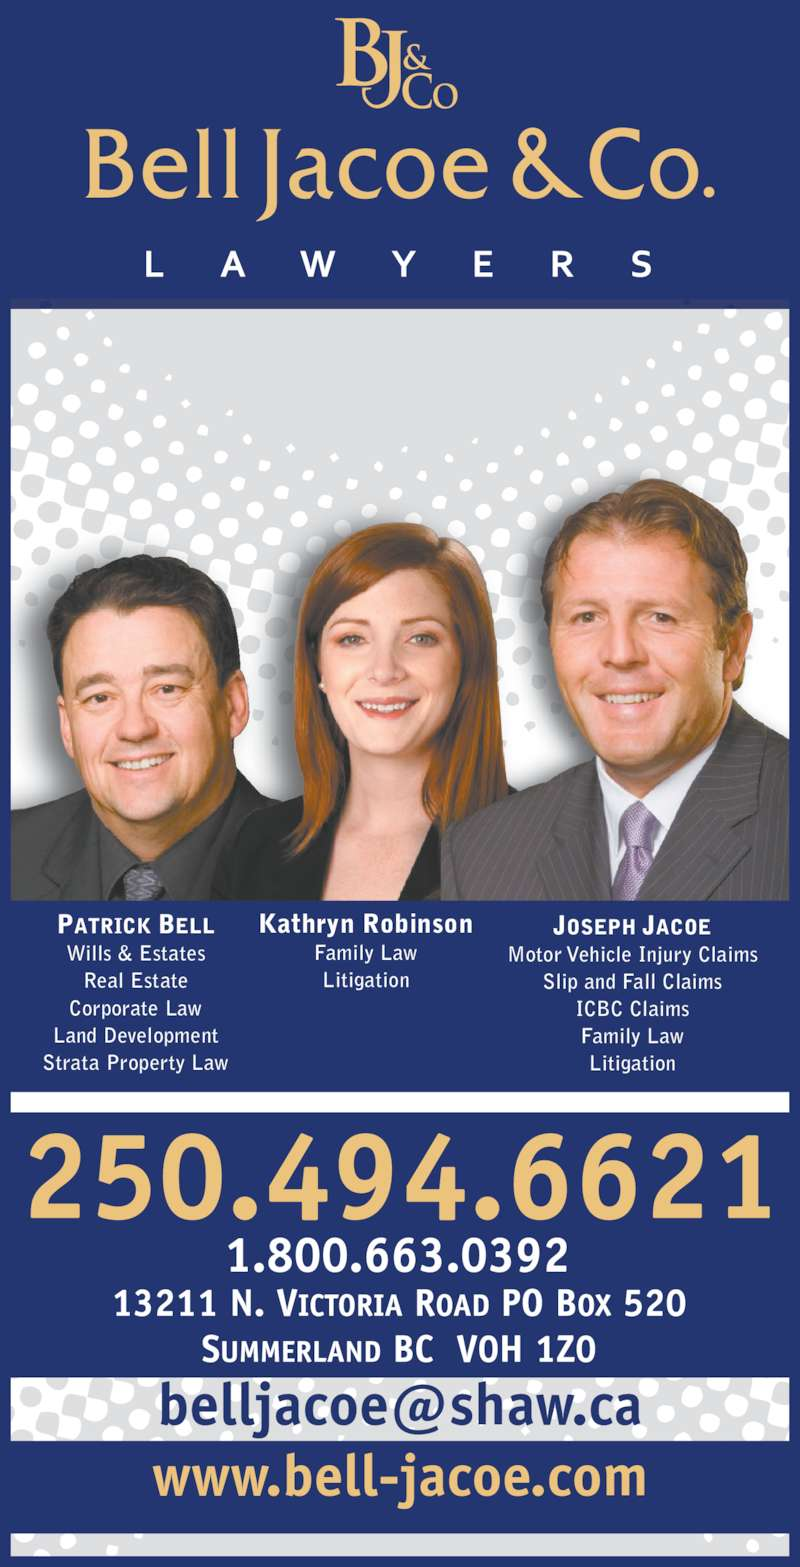 Bell Jacoe & Co (2504946621) - Display Ad - PATRICK BELL Wills & Estates Real Estate Corporate Law Land Development Strata Property Law Kathryn Robinson Family Law Litigation JOSEPH JACOE Motor Vehicle Injury Claims Slip and Fall Claims ICBC Claims Family Law Litigation www.bell-jacoe.com